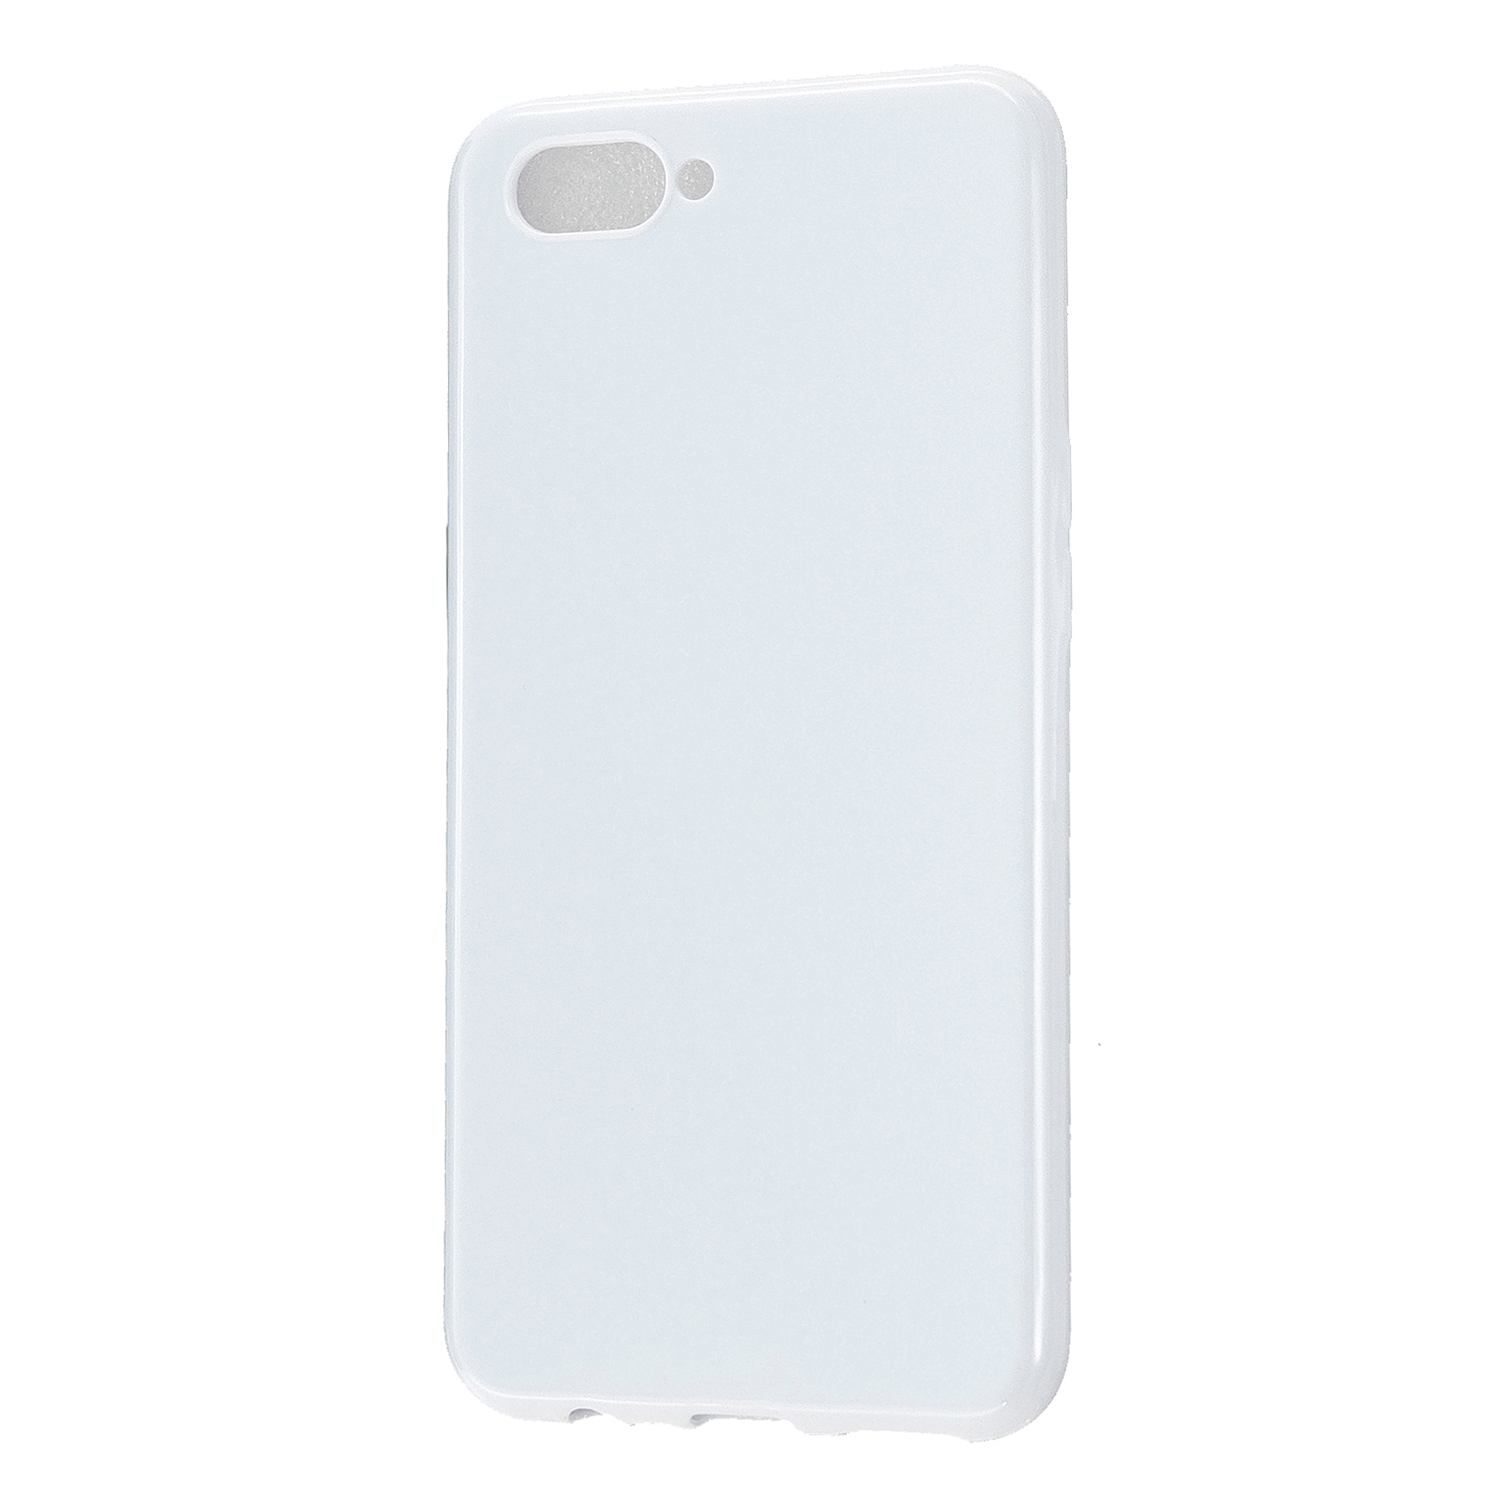 For OPPO A5/A3S/A9 2020 Cellphone Cover Soft Touch Anti-scratch Shockproof TPU Mobile Phone Case  Milk white